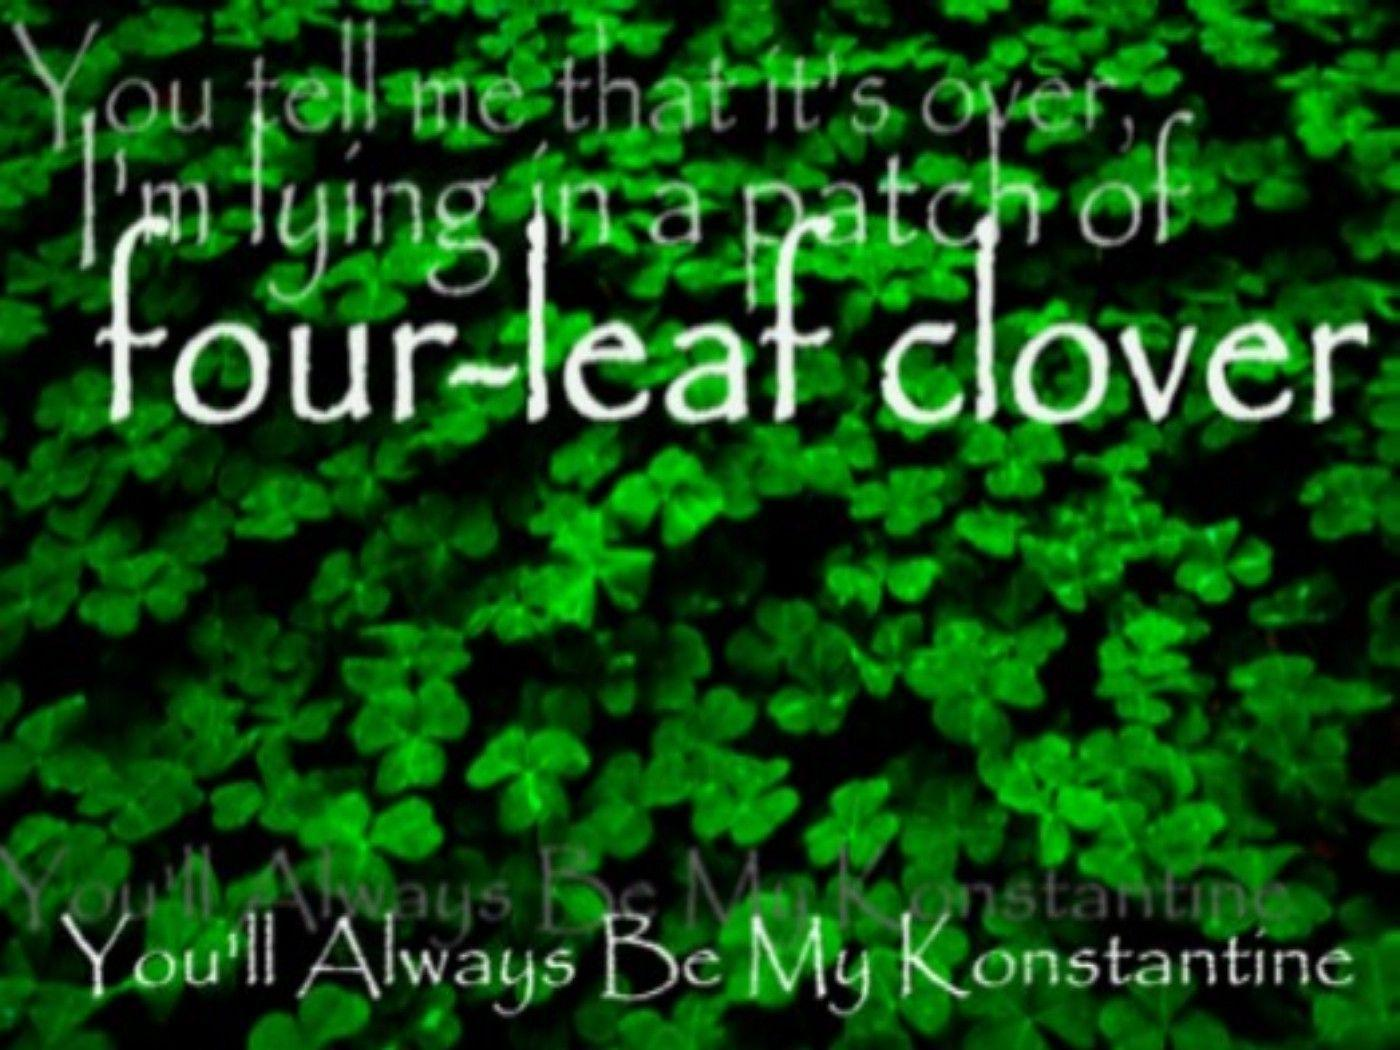 Four Leaf Clover Wallpapers by emilygibson